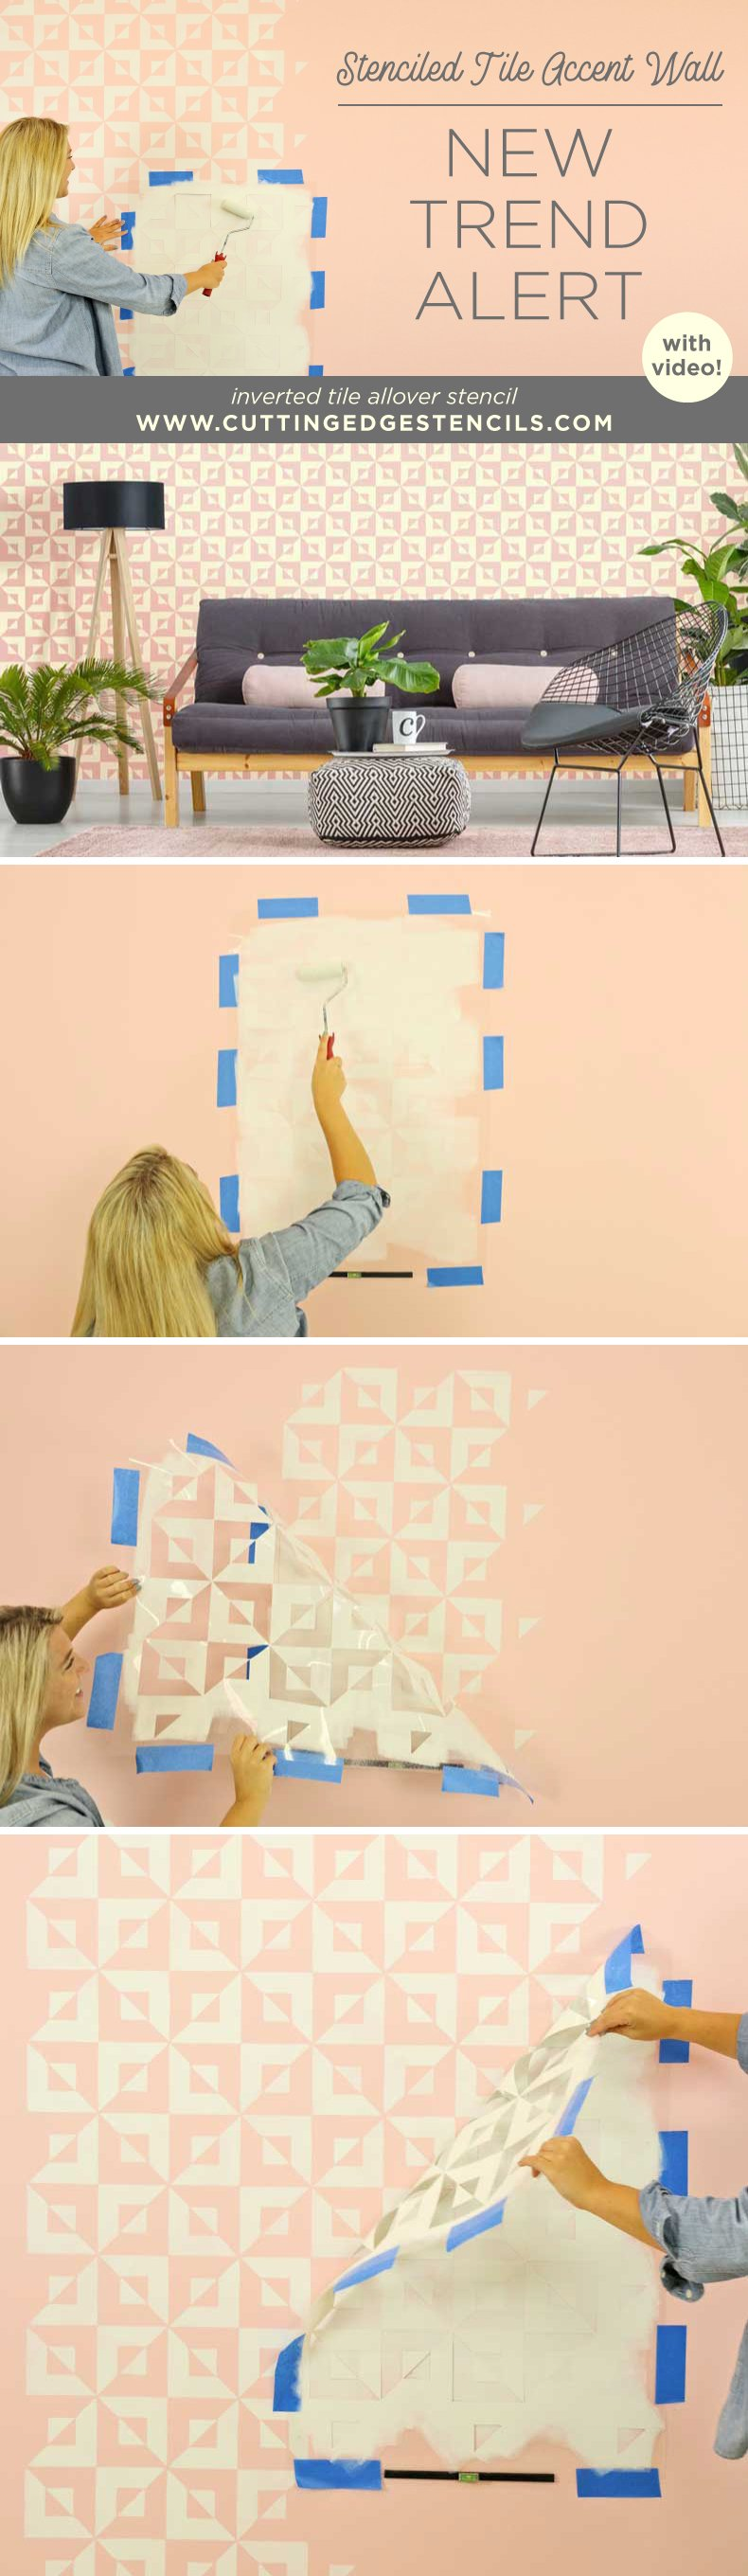 stenciled tile accent wall DIY